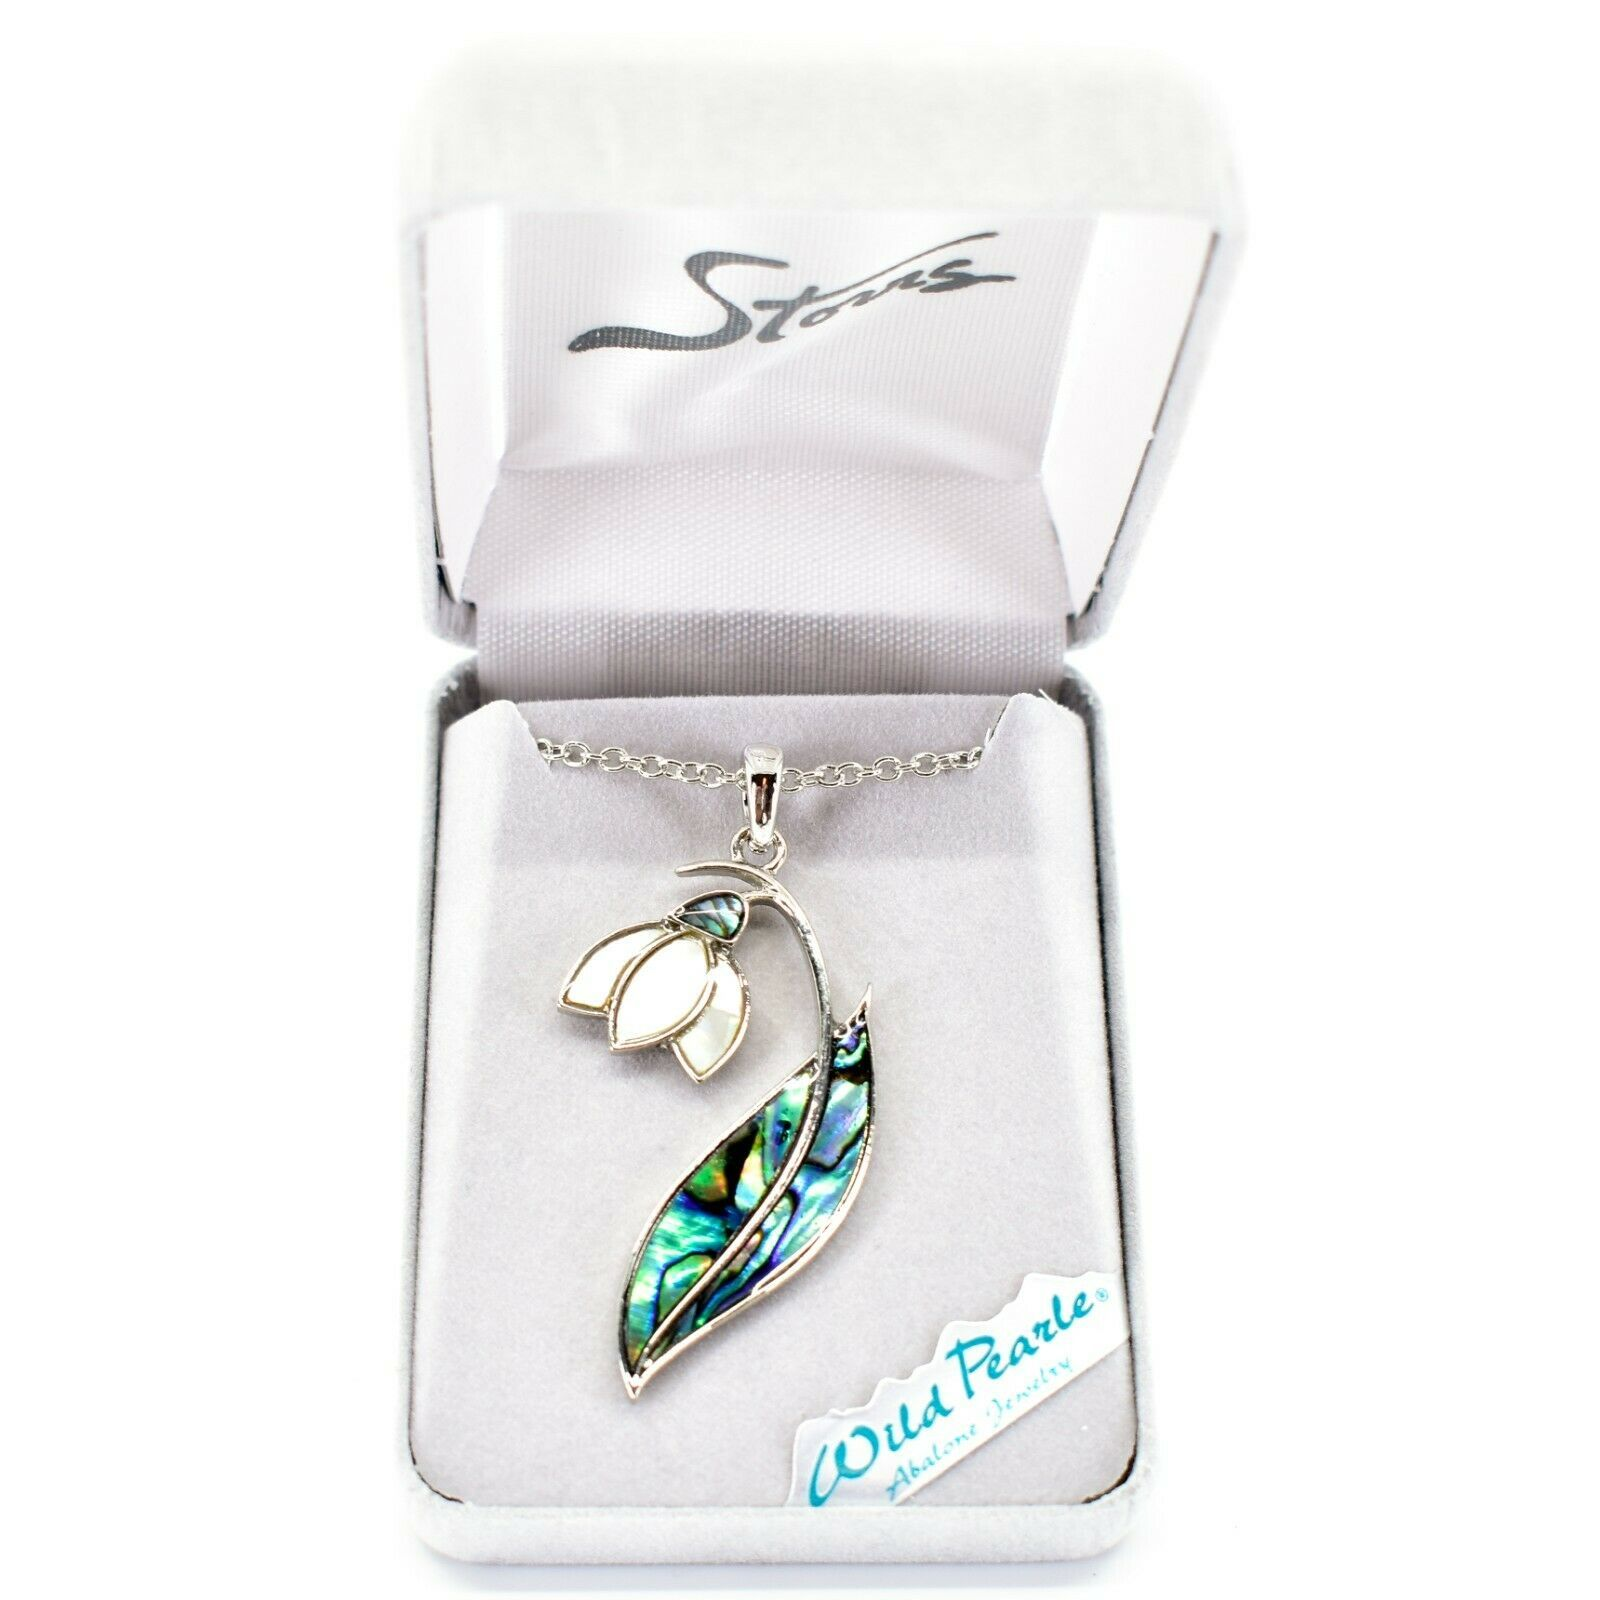 Storrs Wild Pearle Abalone Shell Snowdrop Flower Pendant w Silver Tone Necklace